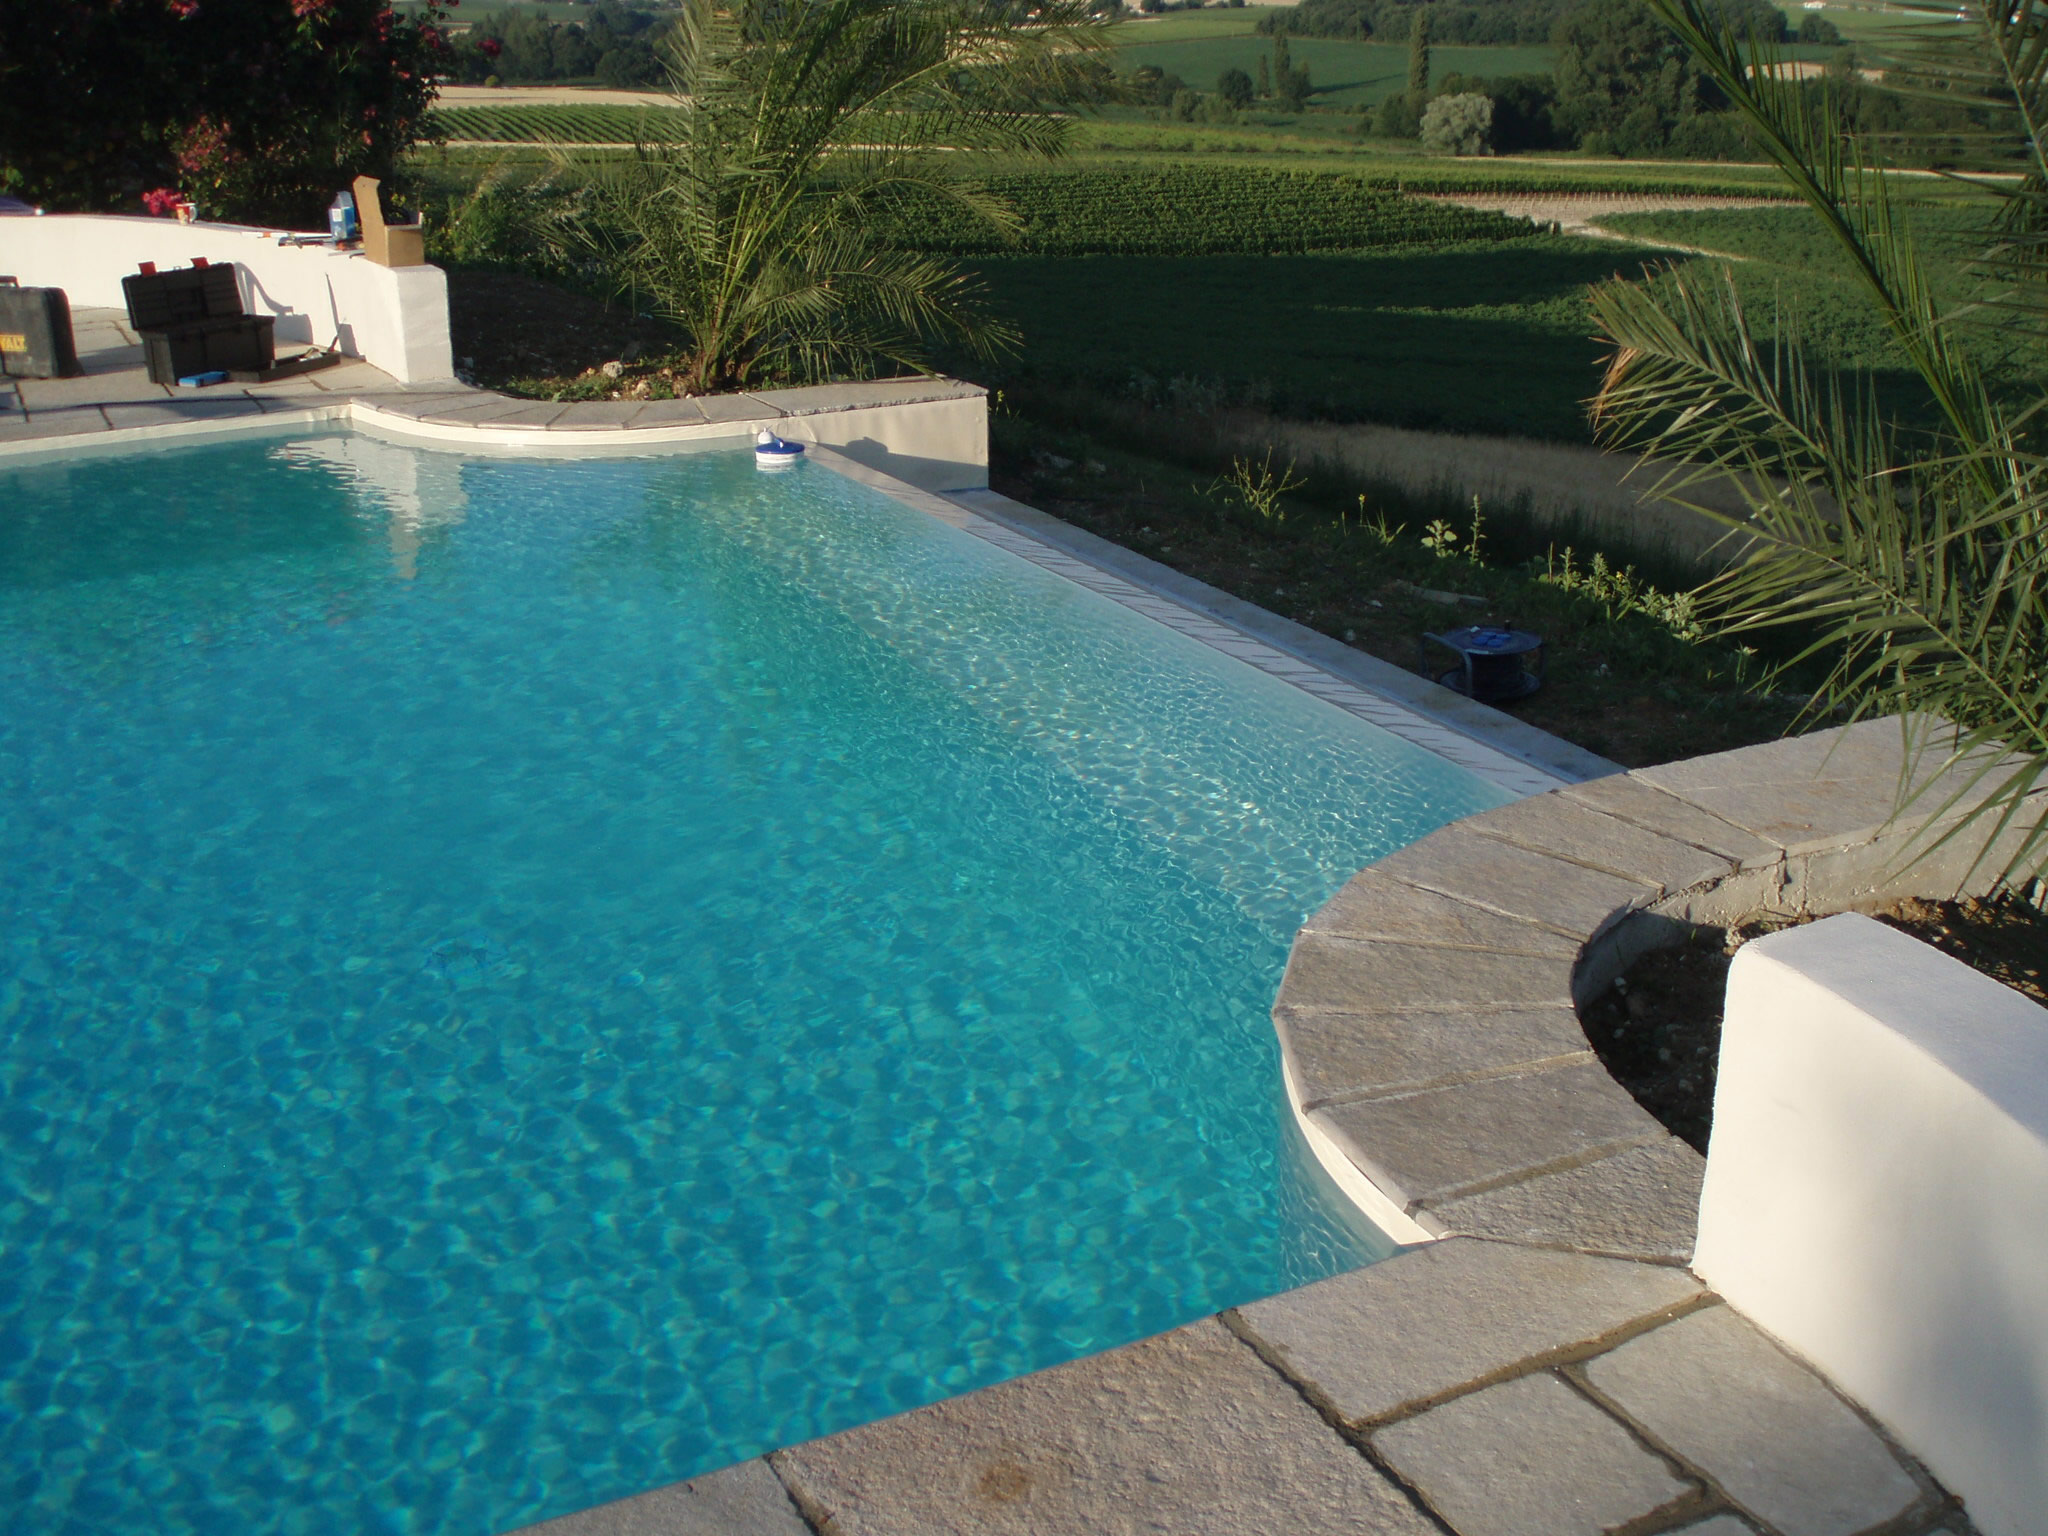 Infinity edge swimming pools and their cost - Infinity edge swimming pool ...